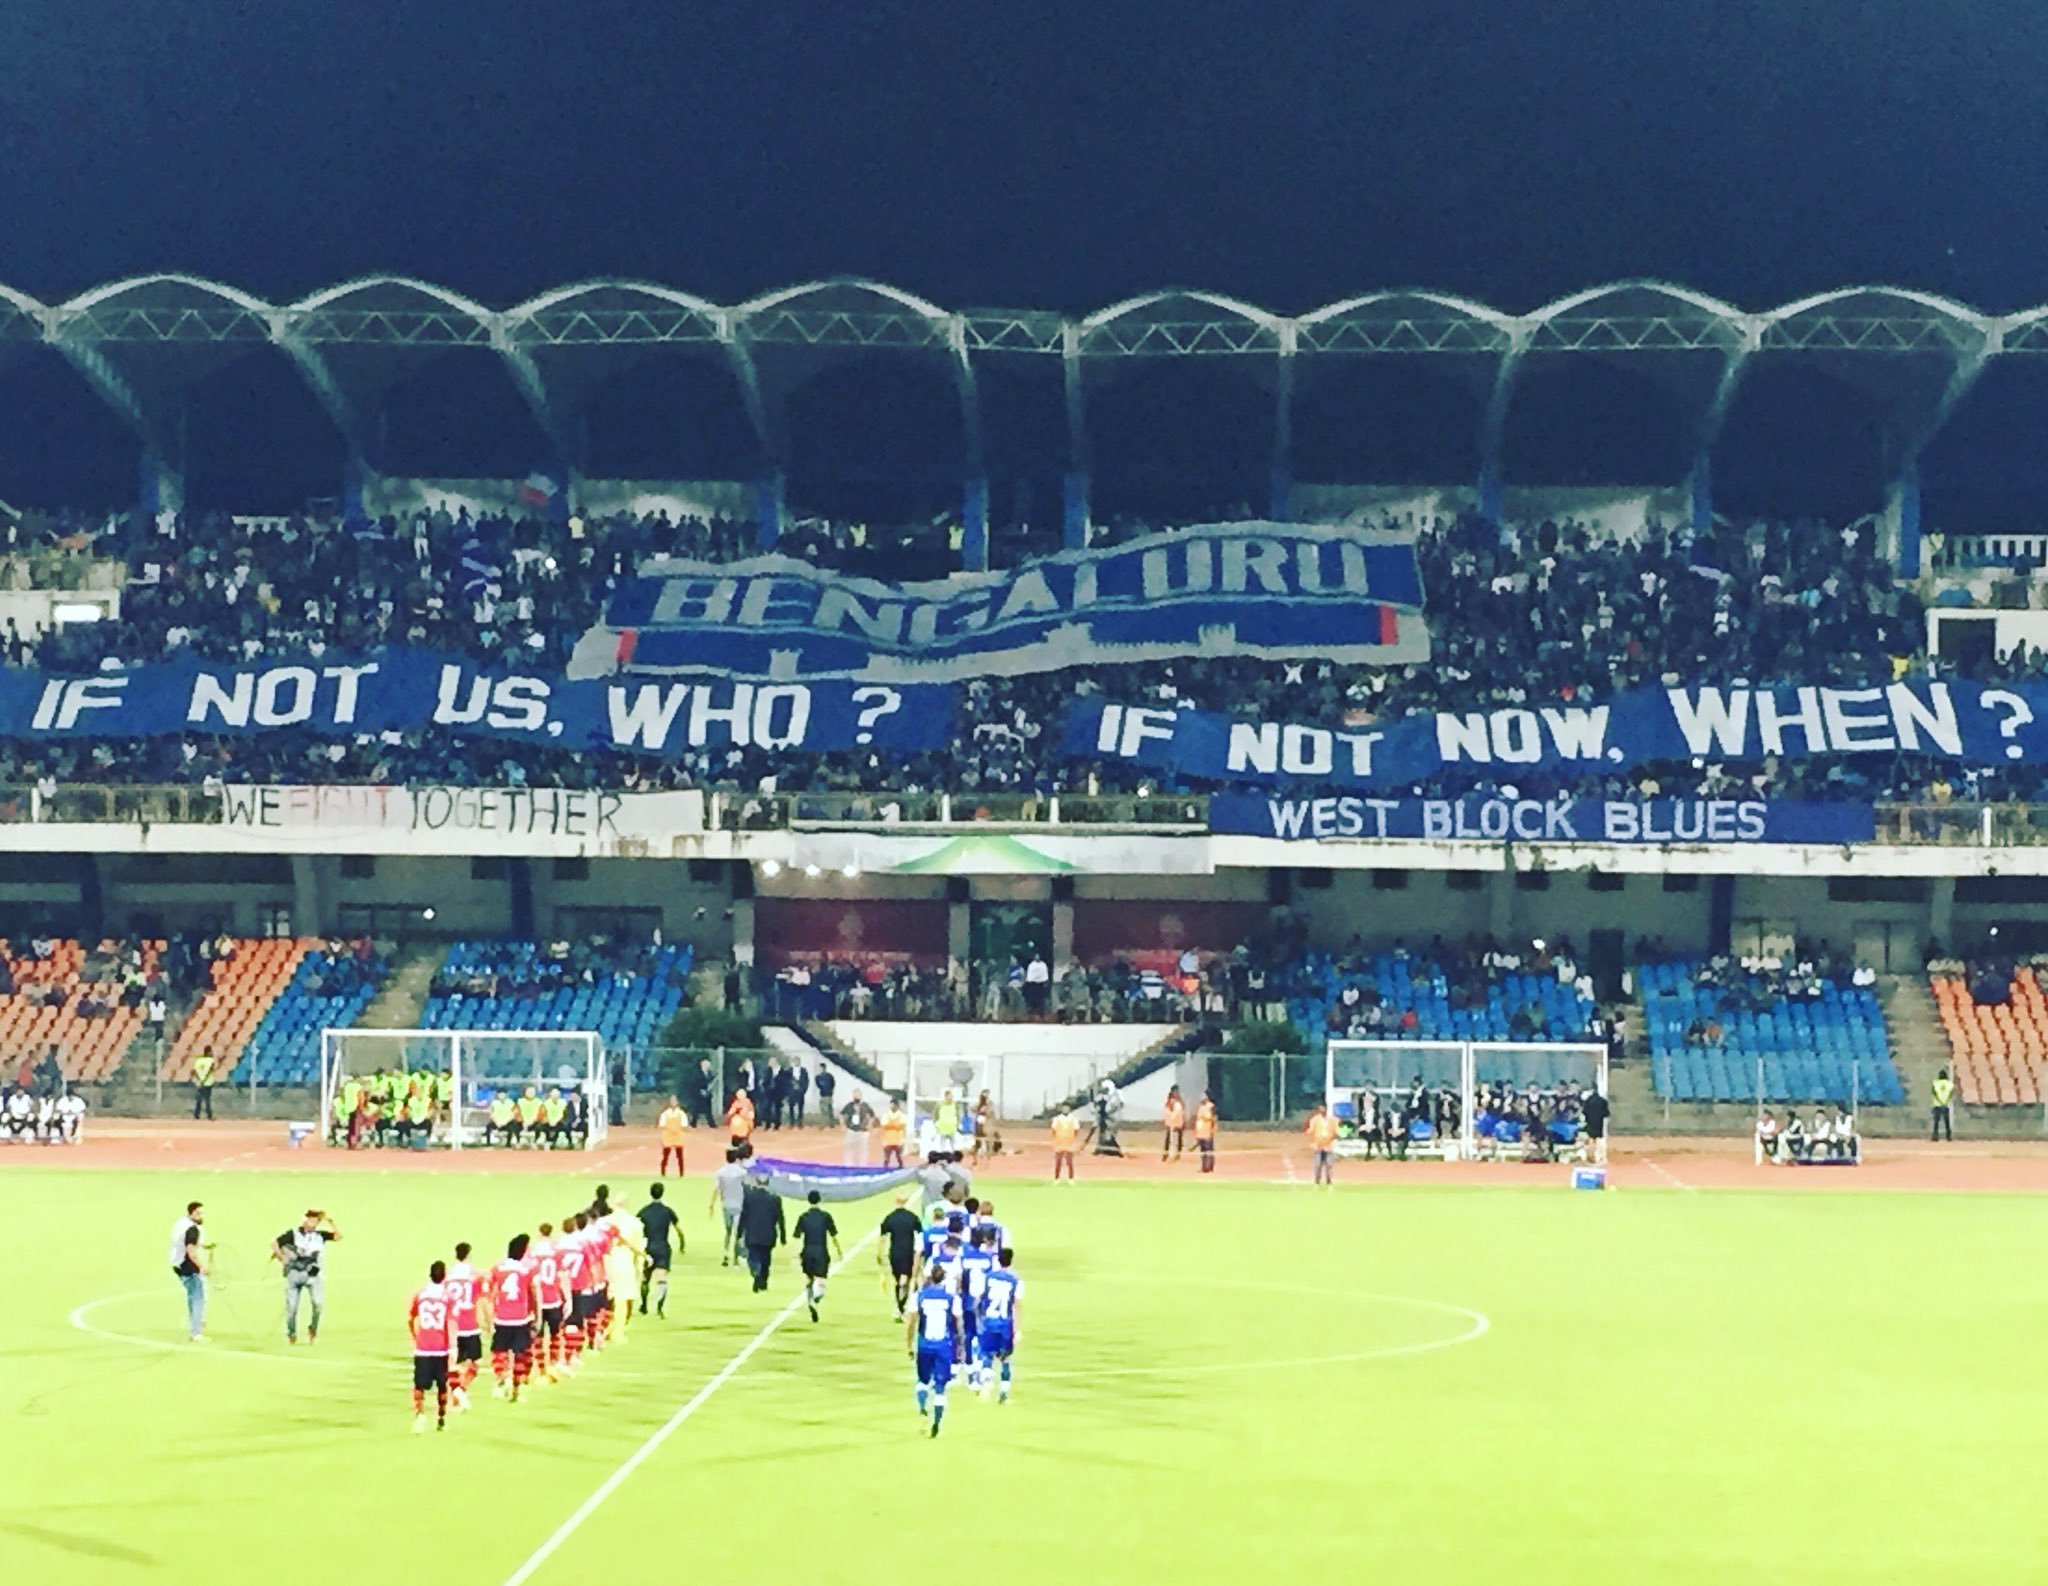 The West Block Blues have a clear message for the team.